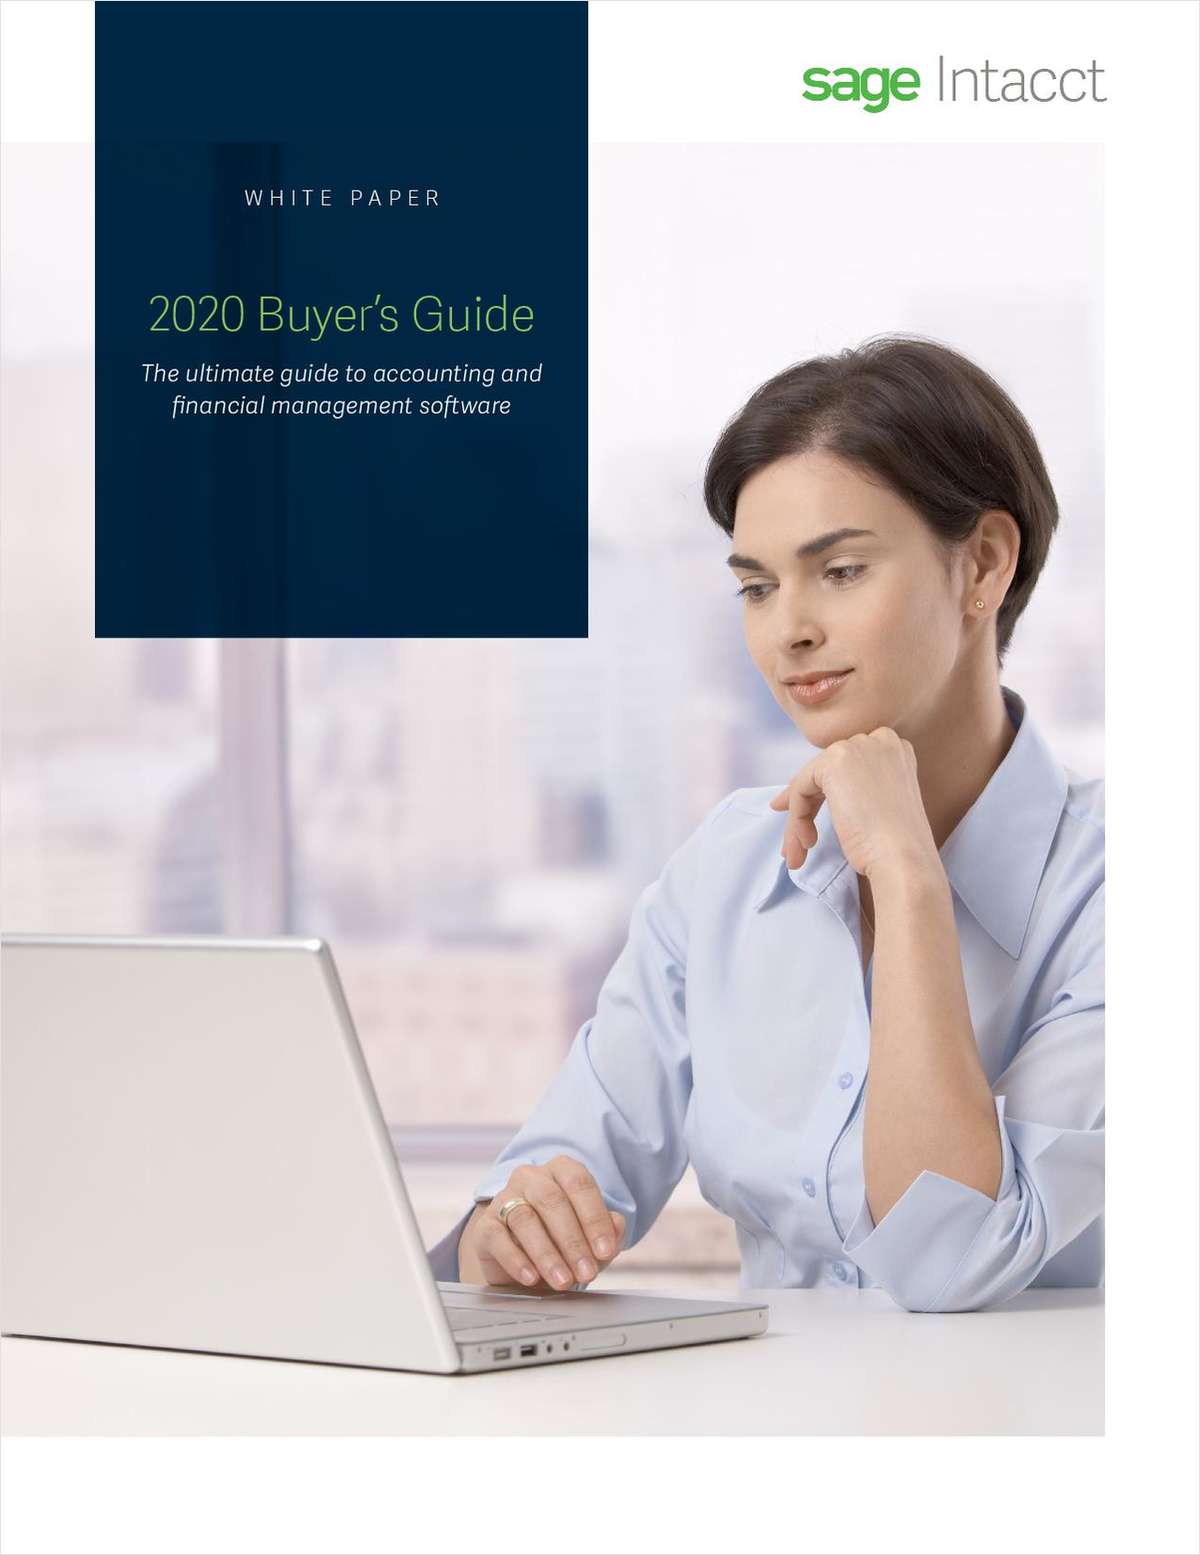 2020 Buyer's Guide to Accounting and Financial Software